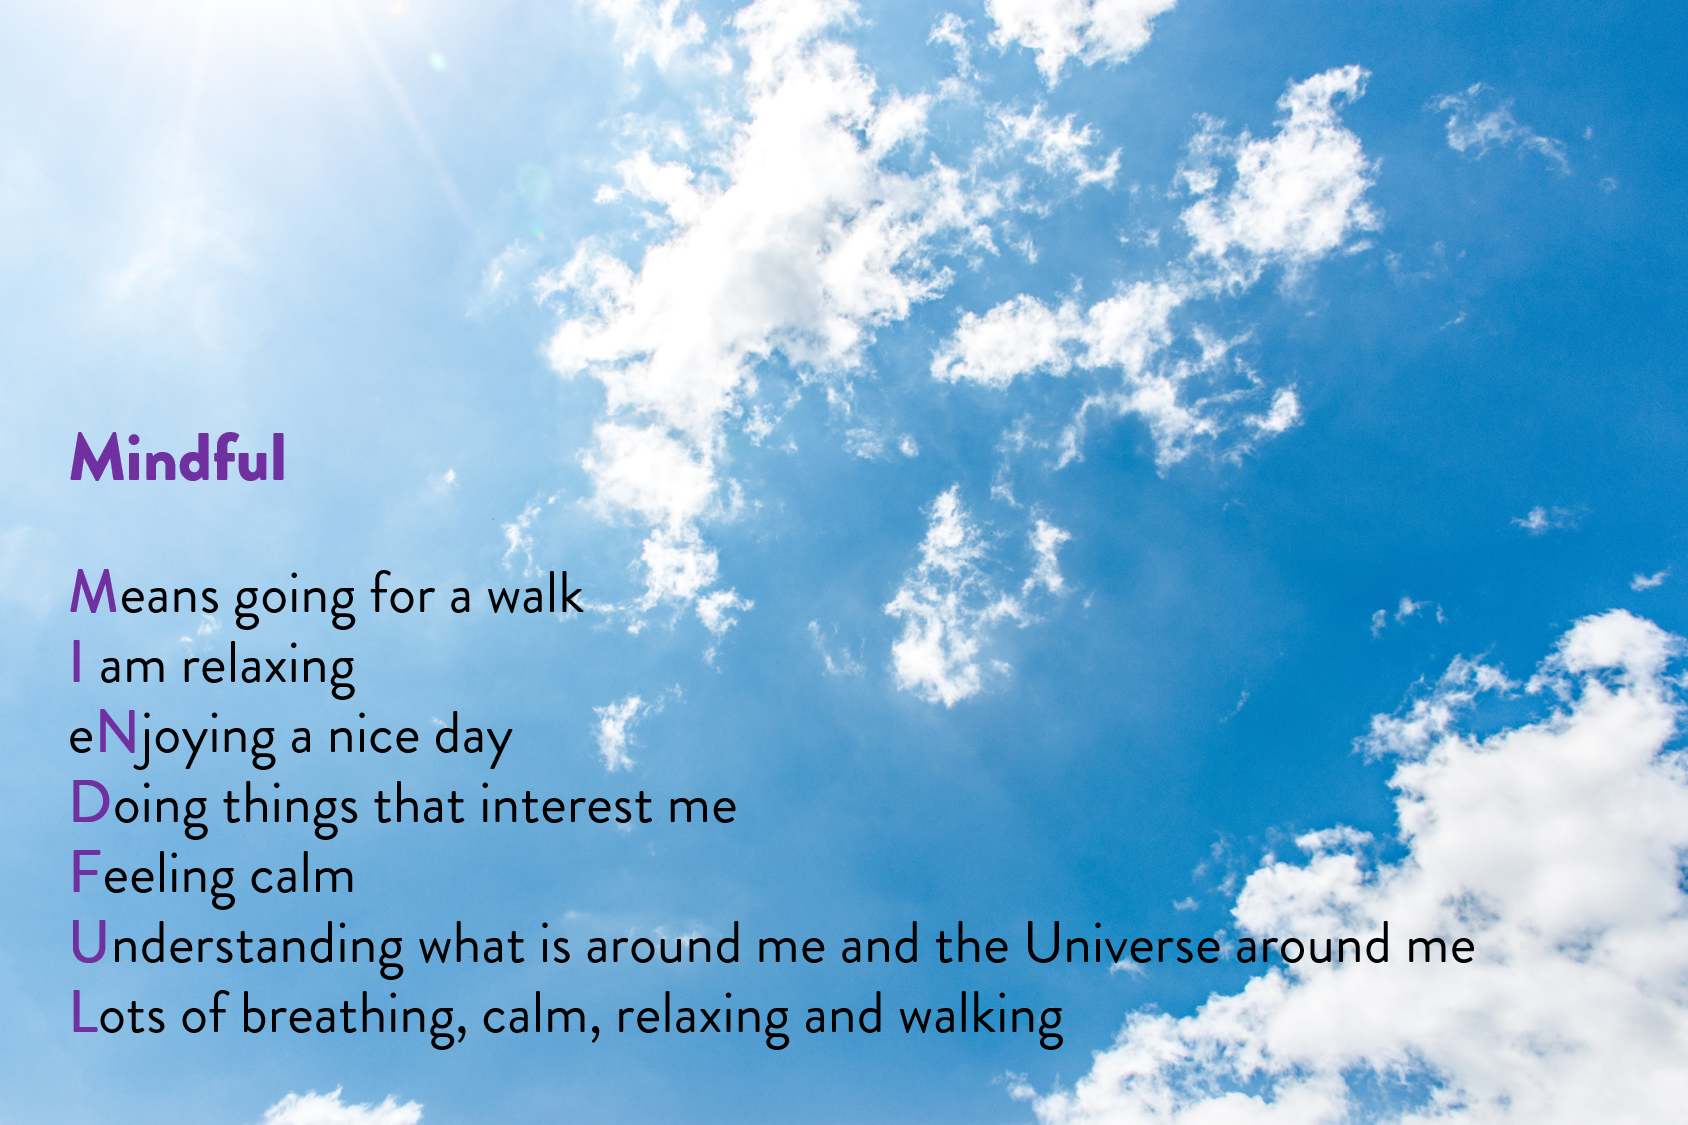 A mindful acrostic poem the To Wander team wrote together